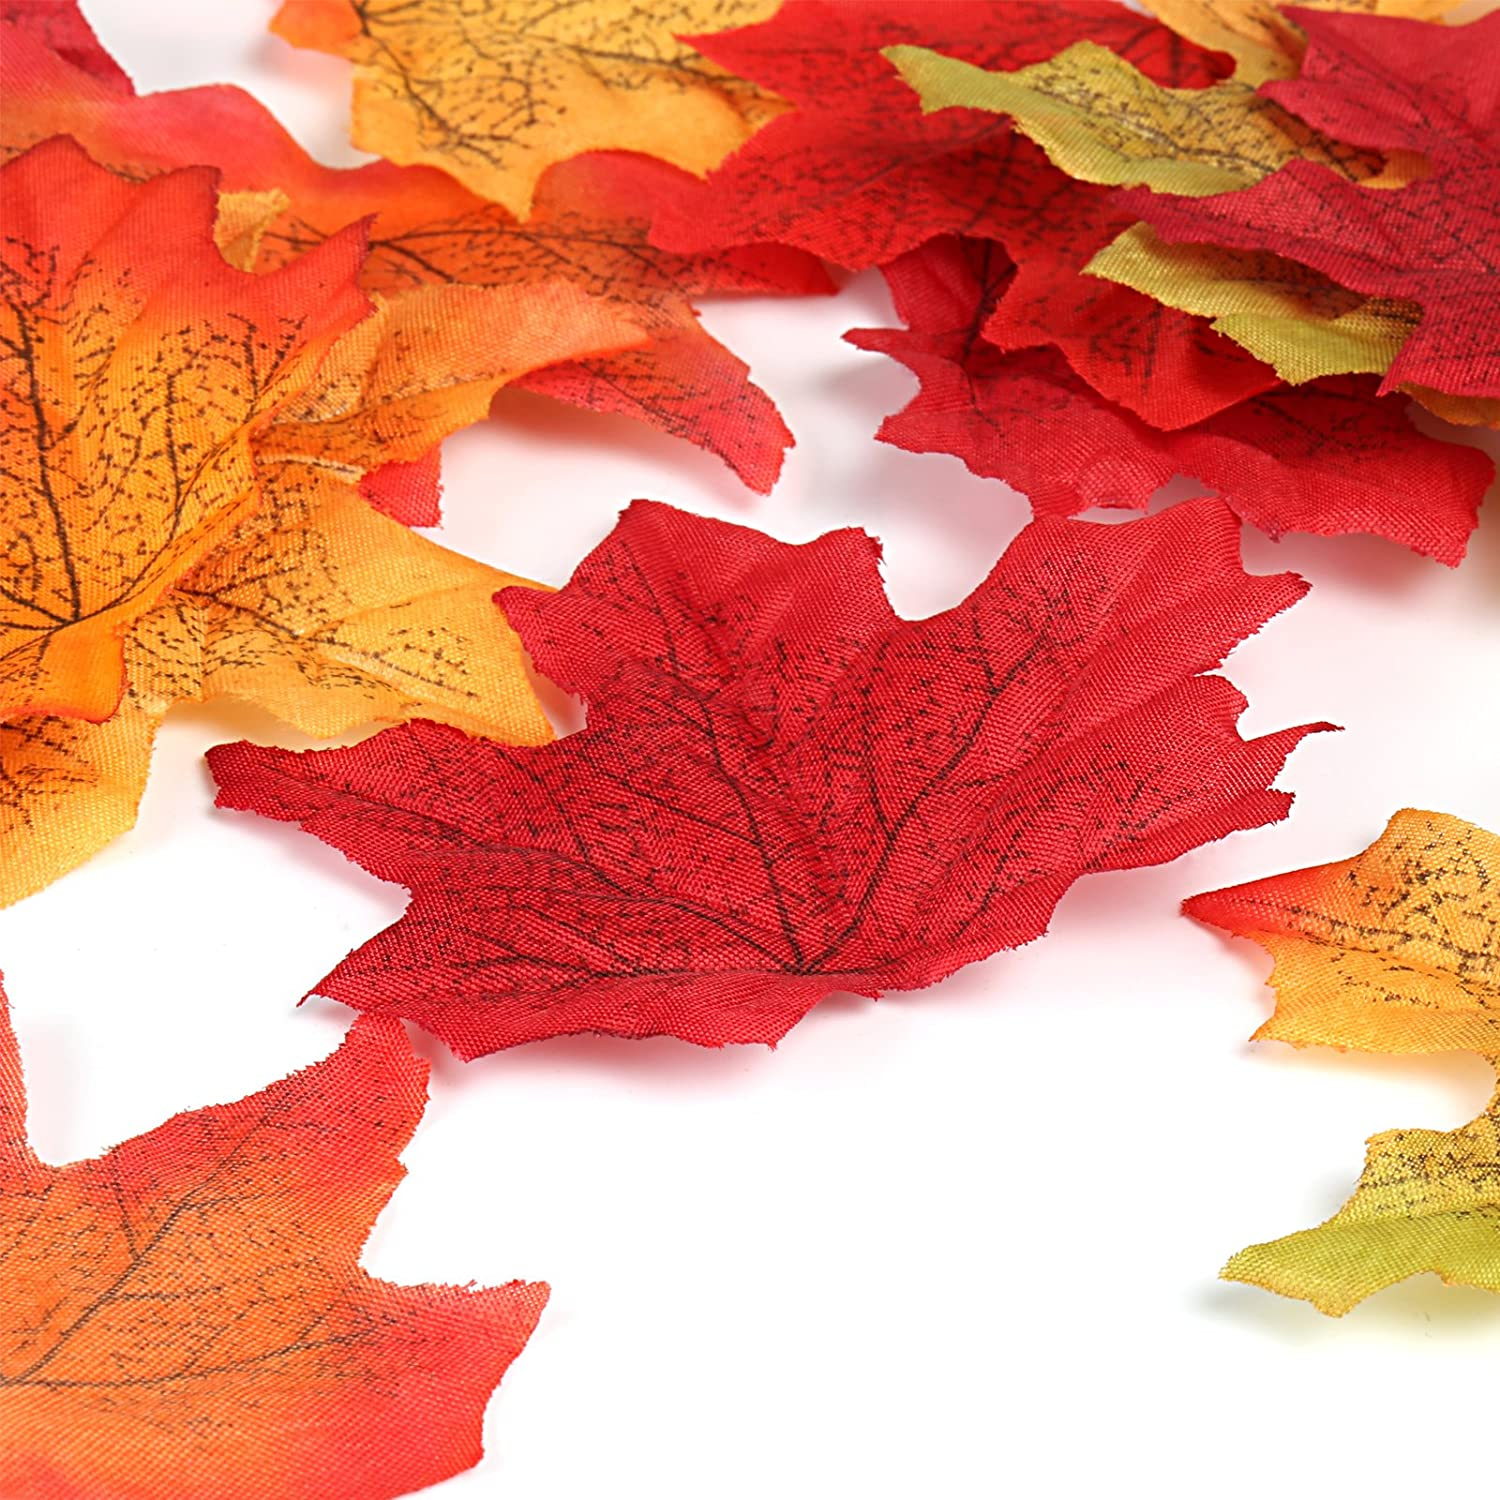 Naler 300pcs Artificial Maple Leaves Multicoloured Fall Coloured Maple Leaves for Art Scrapbooking Wedding House Decorations Autumn Christmas Party Decorating 3.1 inches